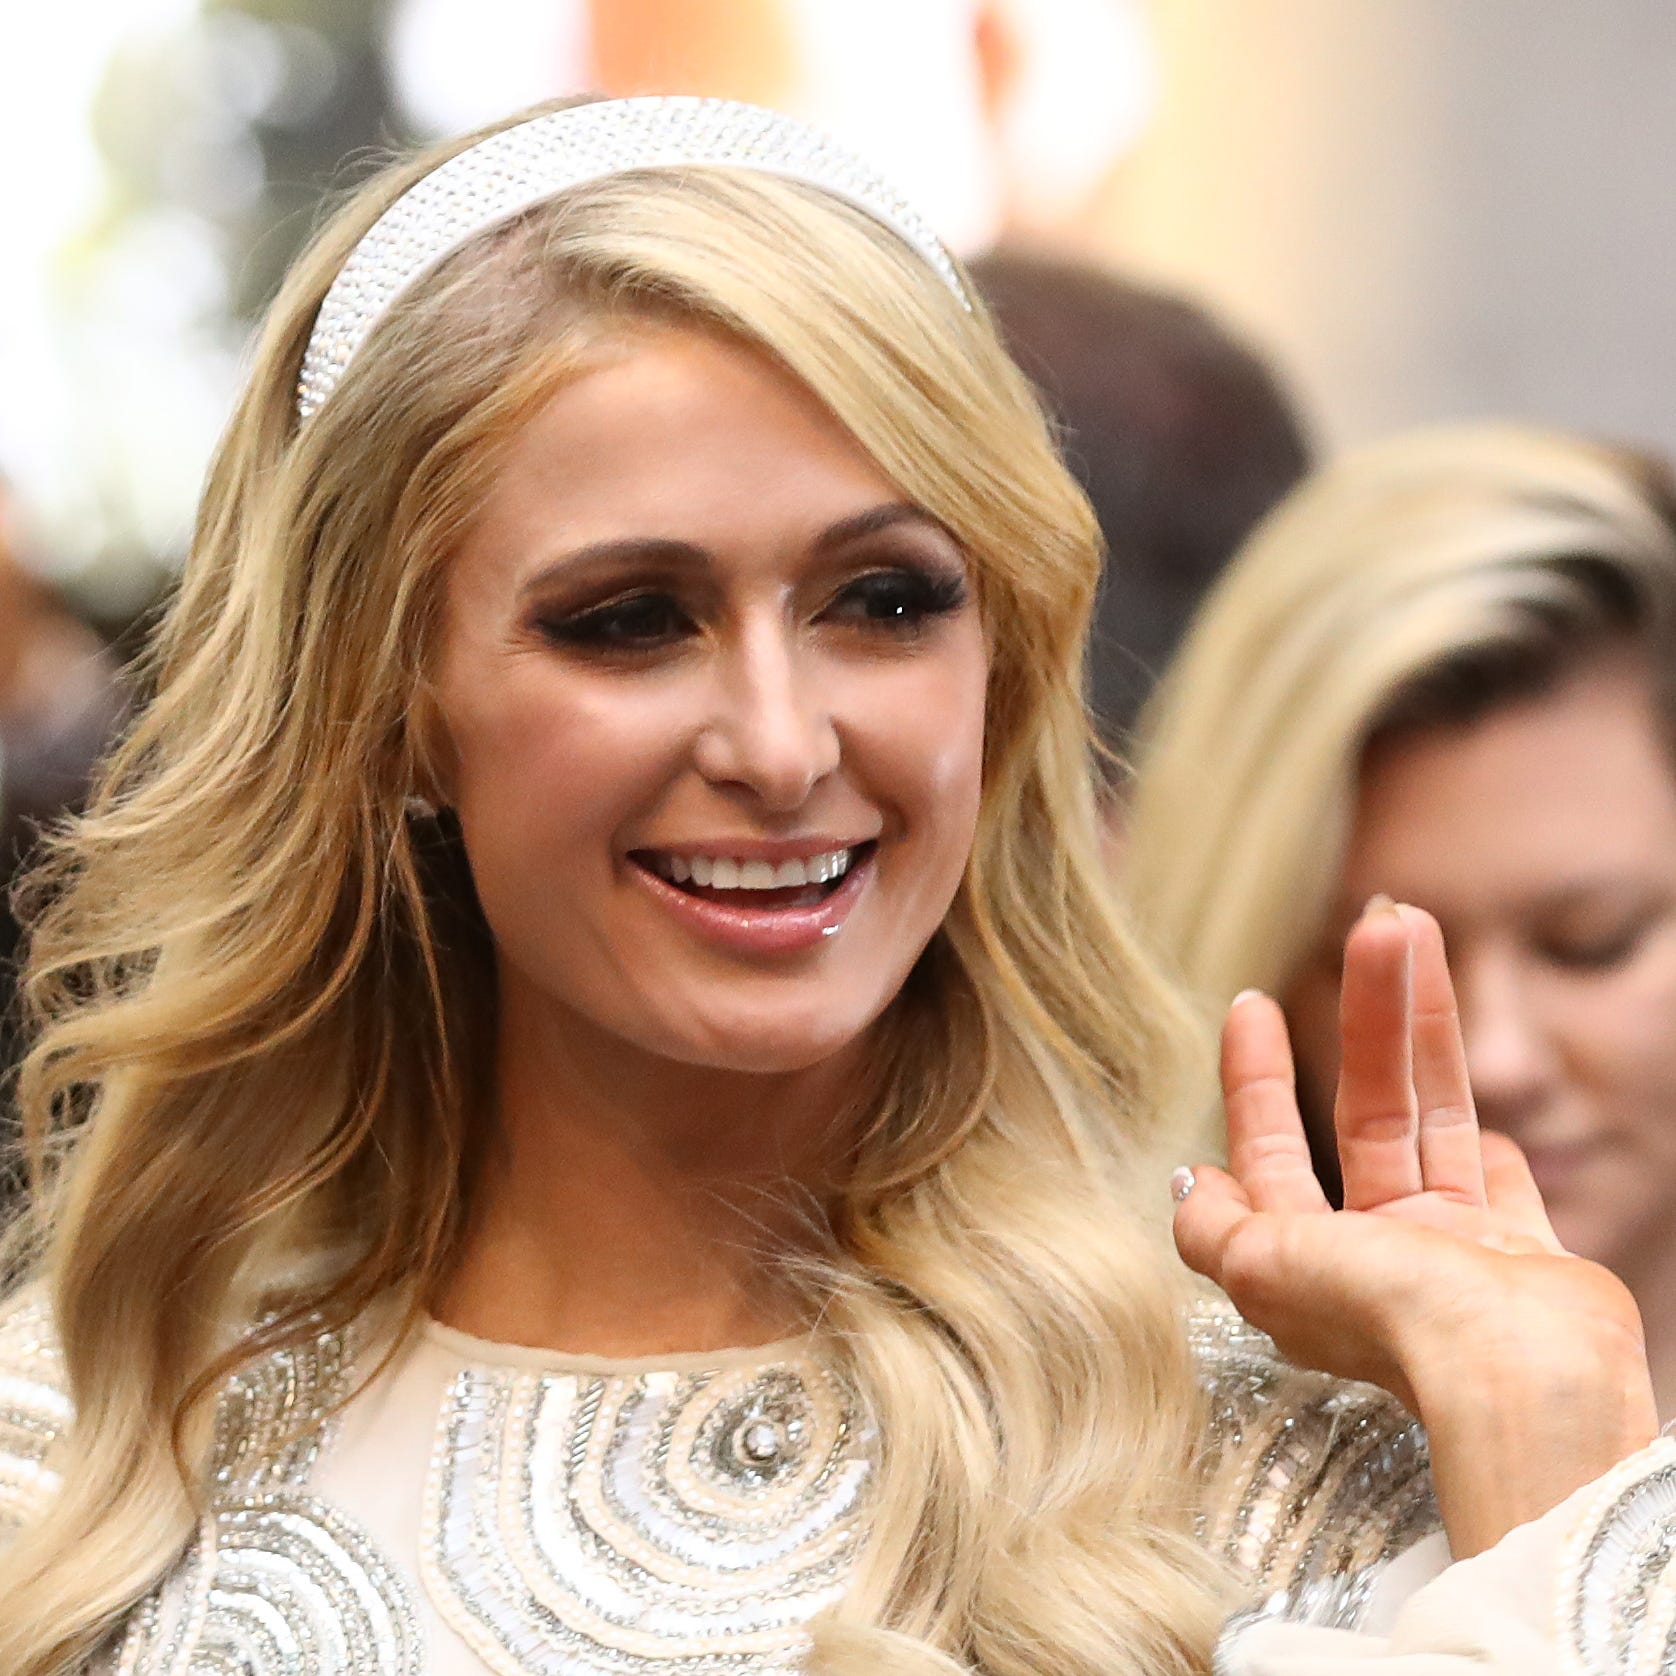 Paris Hilton greets fans at Highpoint Shopping Centre on Nov. 23, 2018, in Melbourne, Australia.